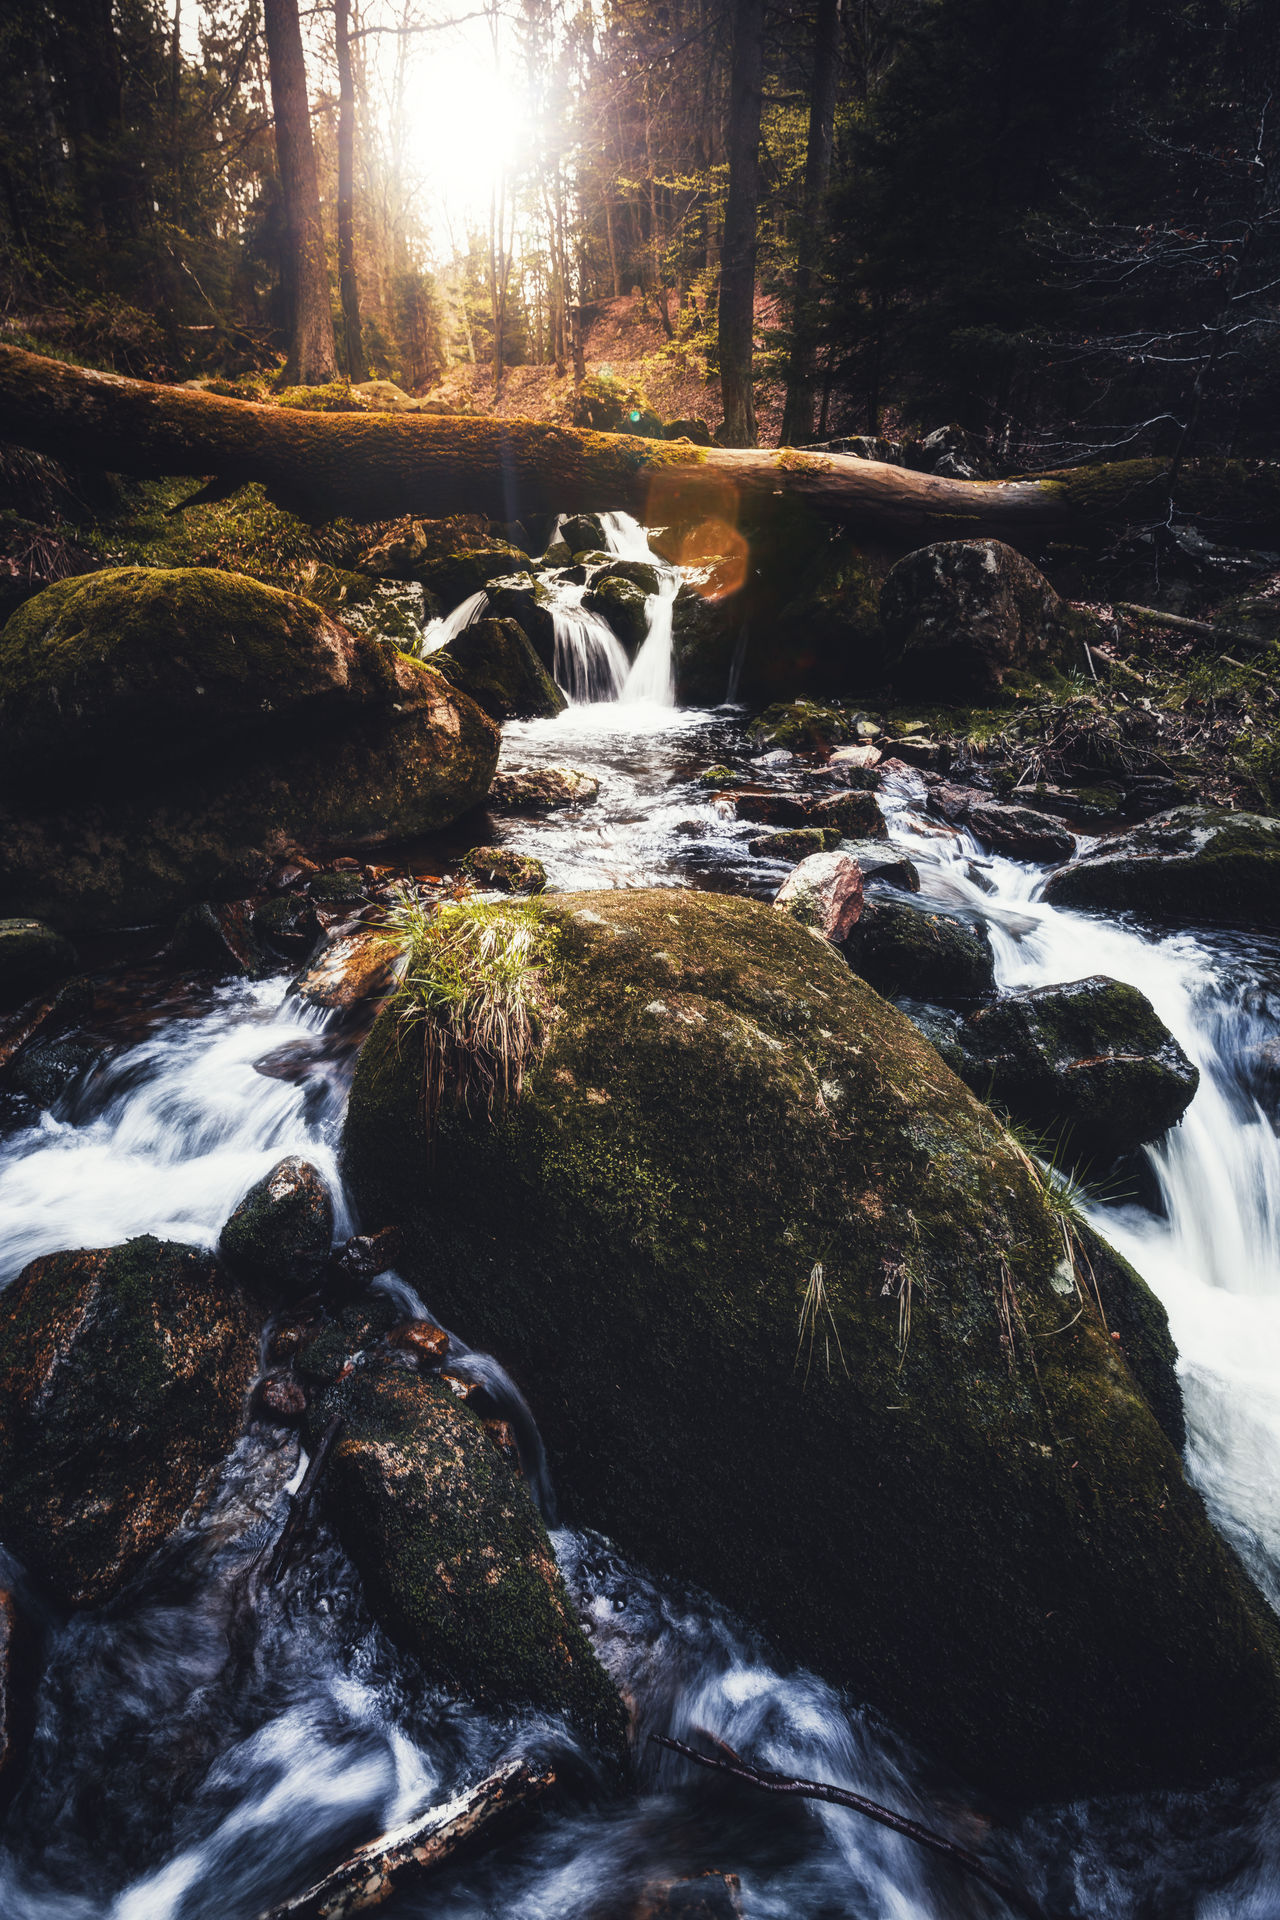 Ilsefälle Beauty In Nature Day Exploring New Ground EyeEmNewHere Eyemphotography Flowing Water Forest Harz Ilsefälle Ilsenburg Ilsetal Long Exposure Motion Nature No People Outdoors Rock - Object Scenics Stream Tranquil Scene Tranquility Tree Water Waterfall